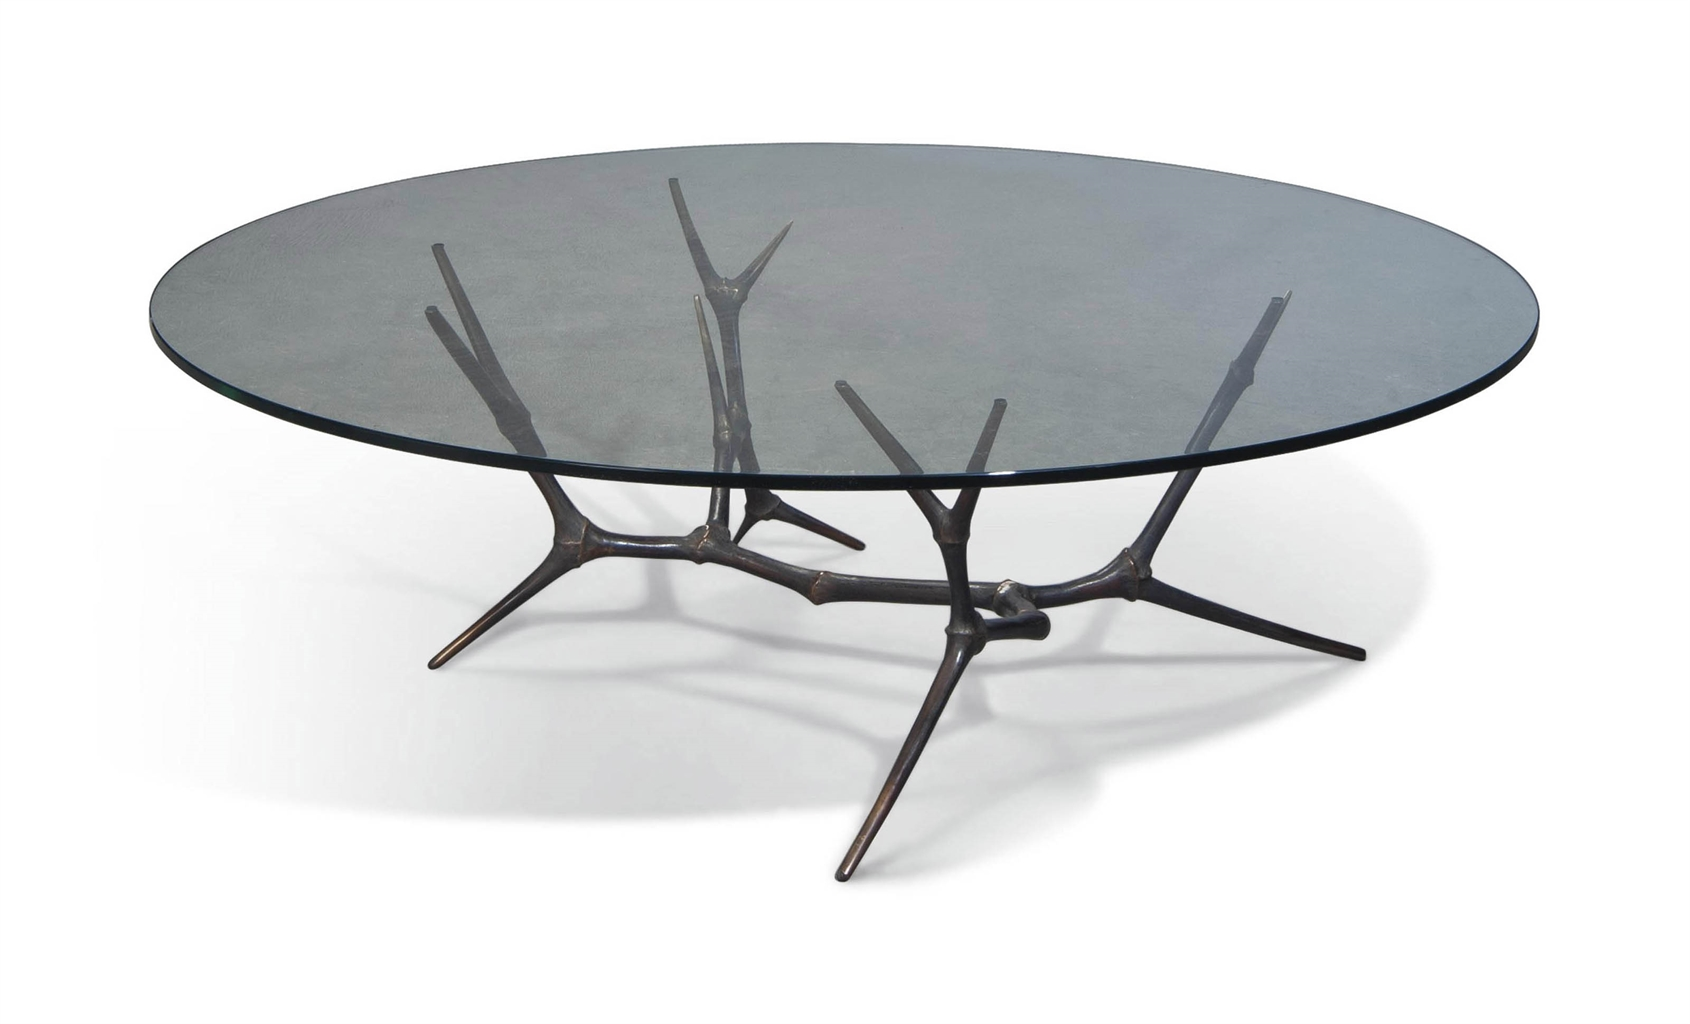 Charles Haupt-'Num Num', An Occasional Table, 2010-2010